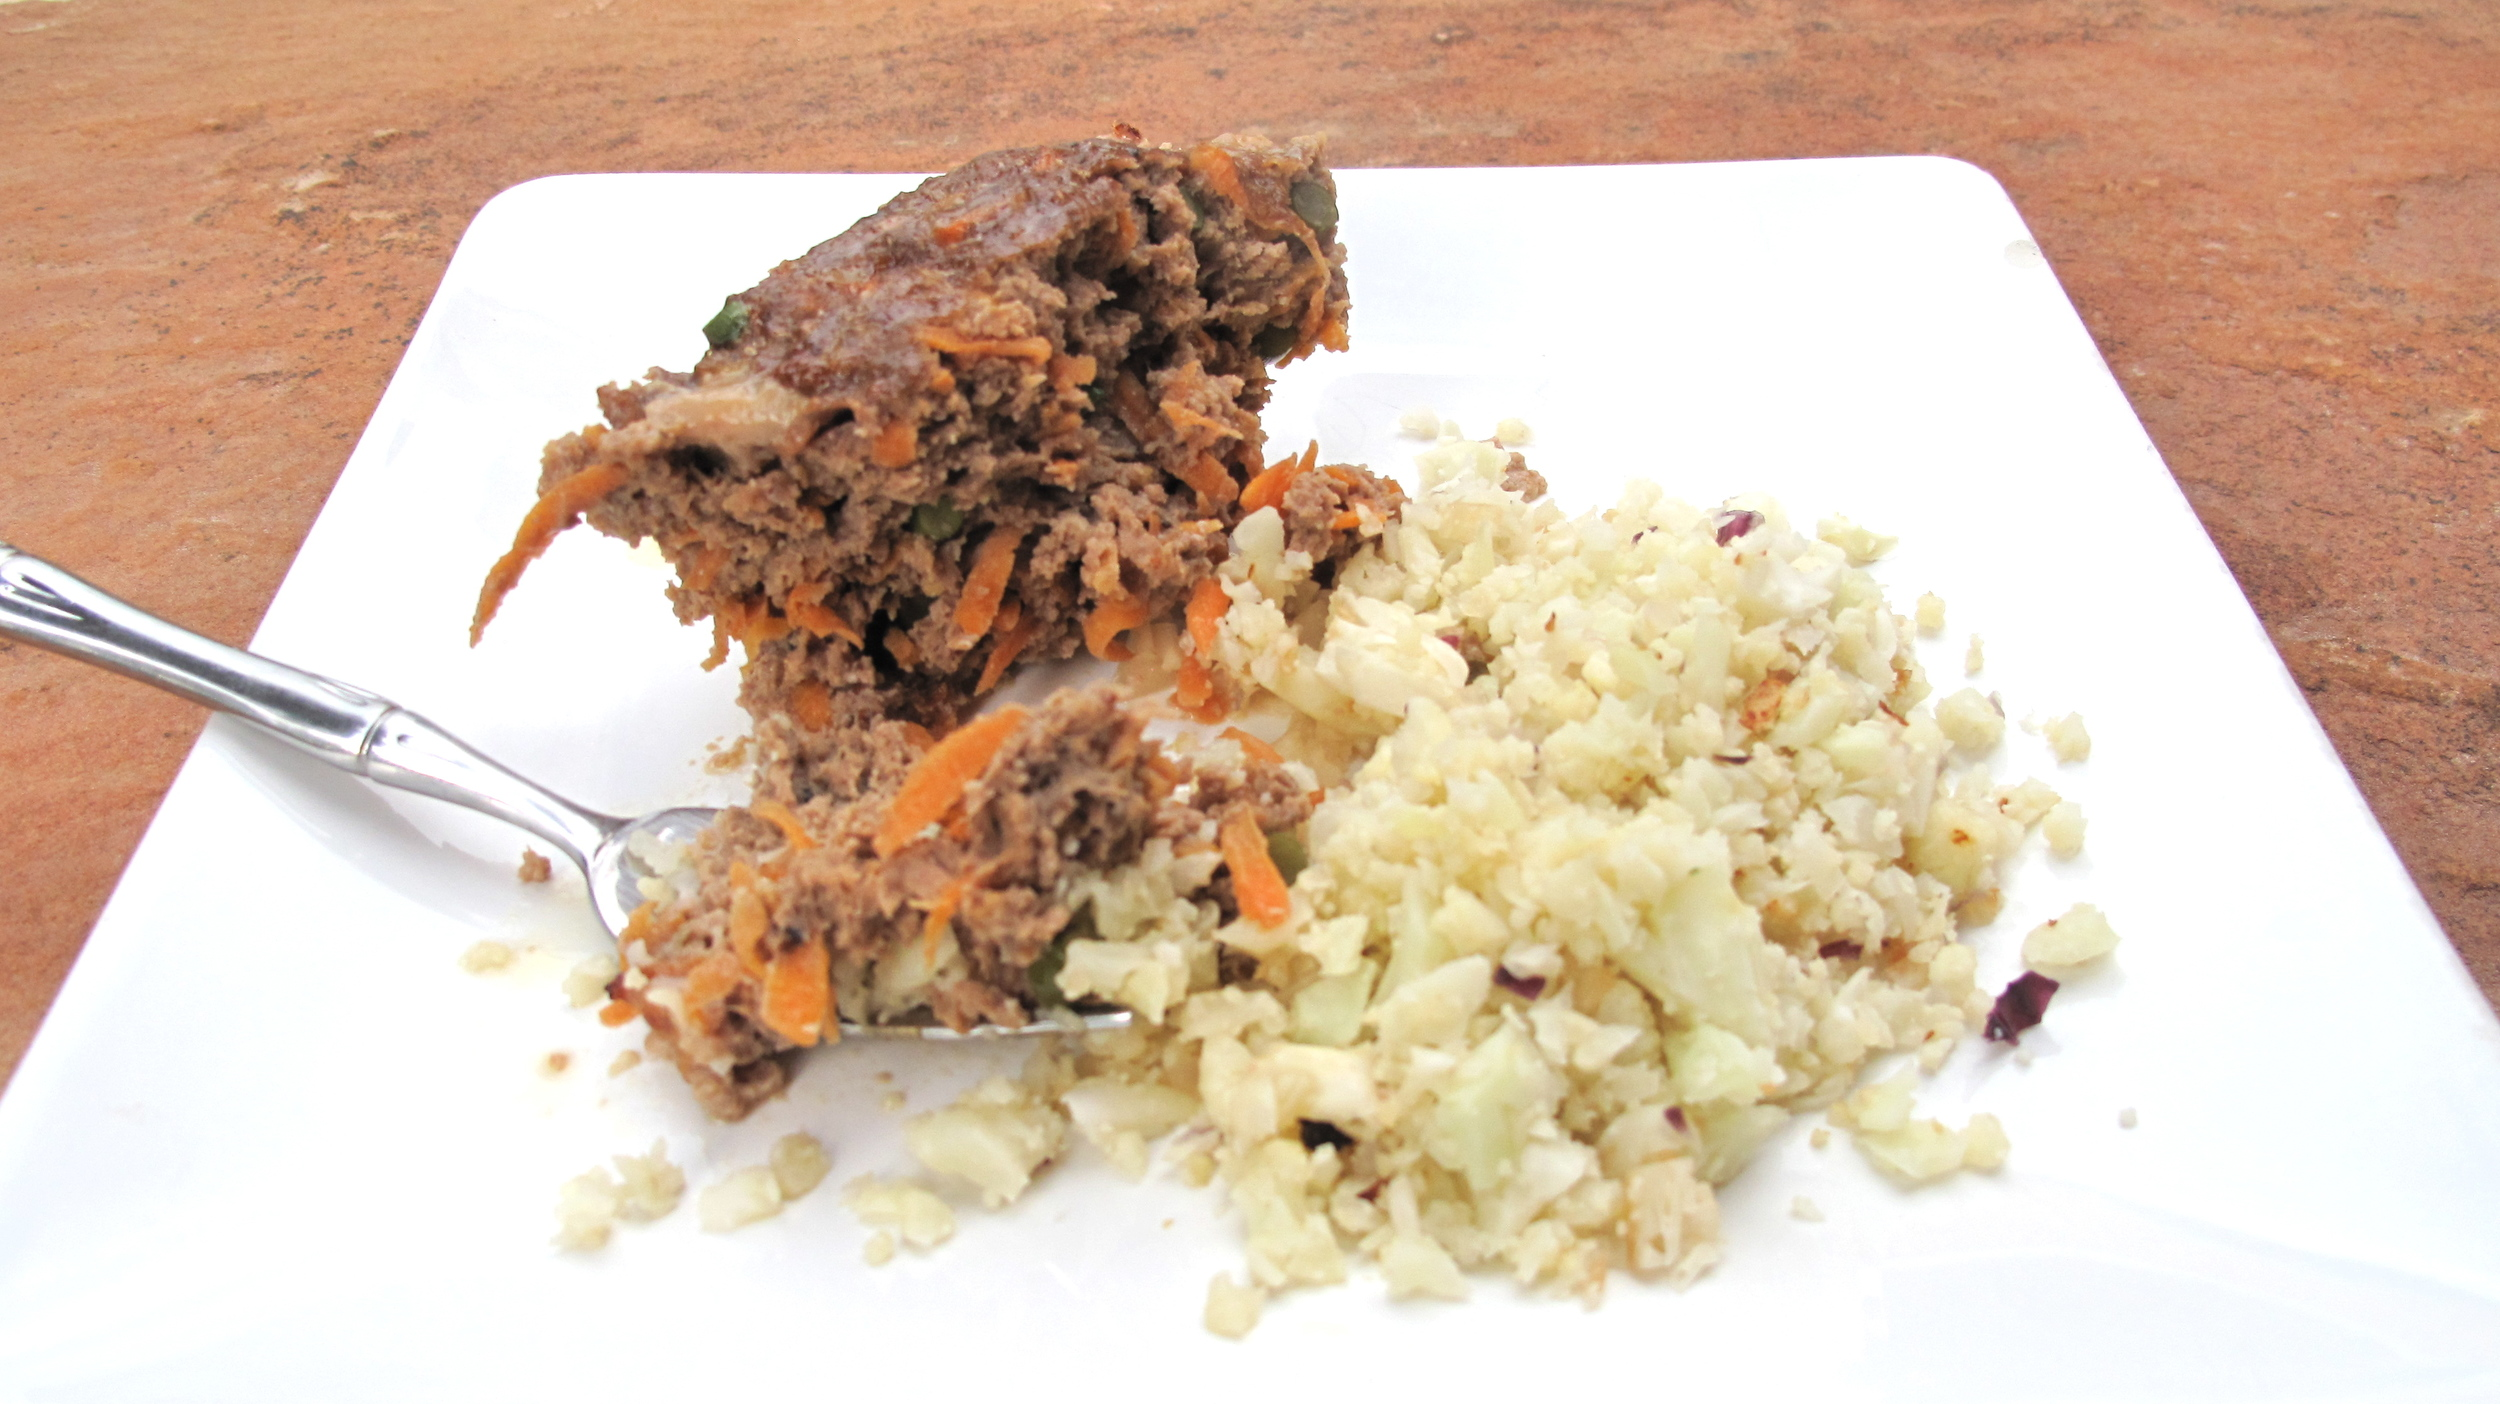 This high-protein and low glycemic carb meal is a delicious alternative to the previous incarnation of ketchup-drenched meat loaf and mashed taters.